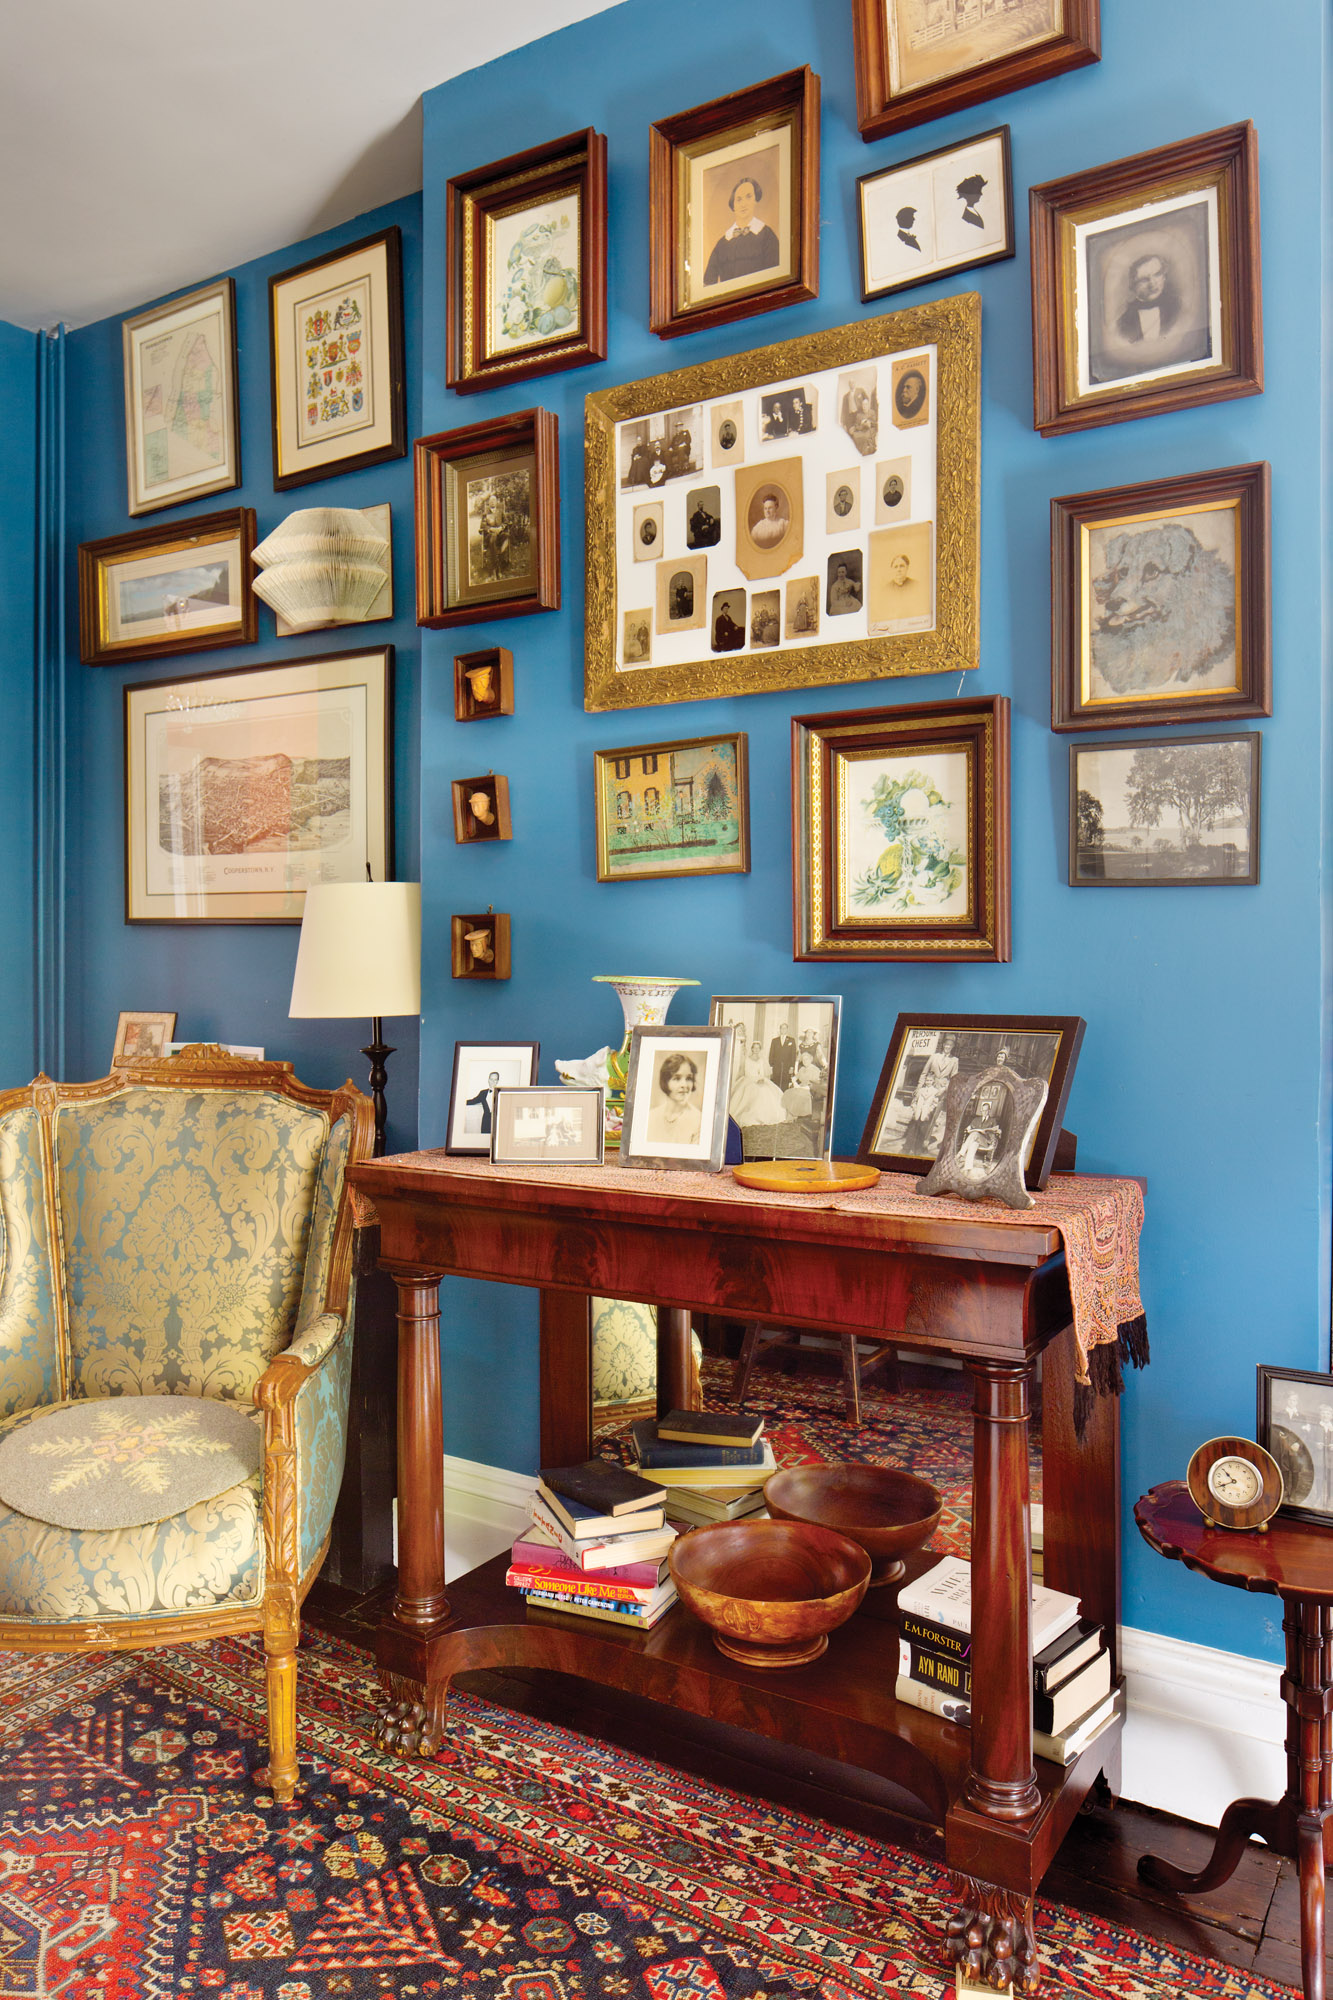 In the library, family photos and artwork going back generations are on display, along with a dog's portrait painted by the owner's great-great-grandmother in 1841.